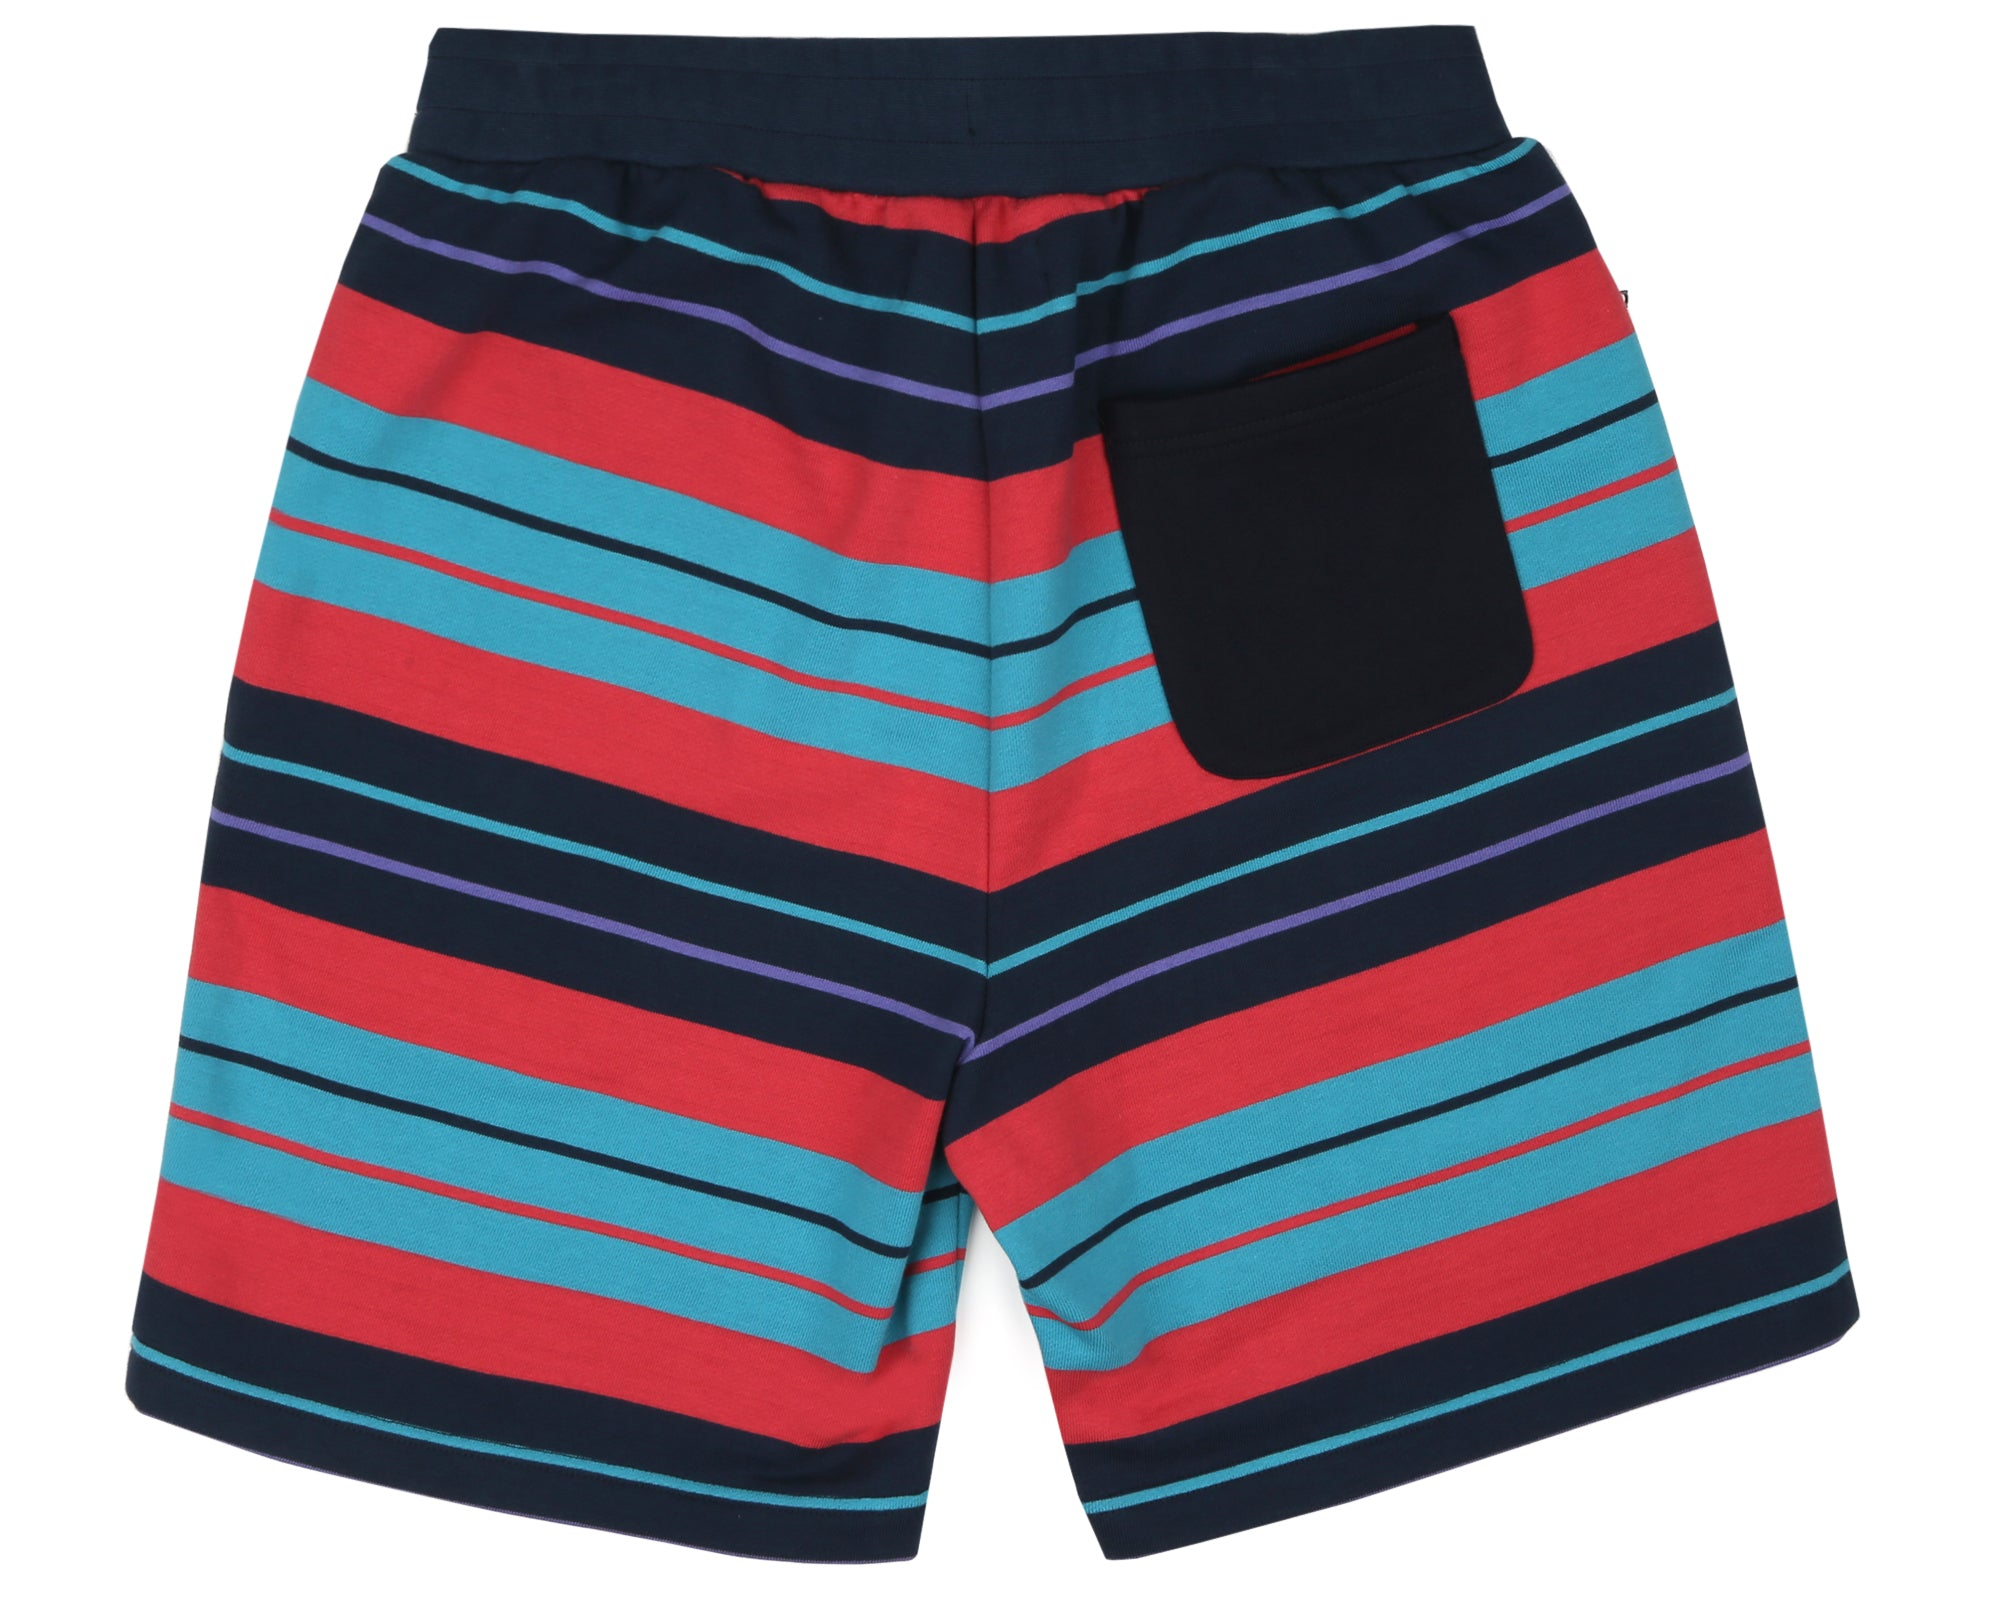 MULTI STRIPE SHORTS - NAVY